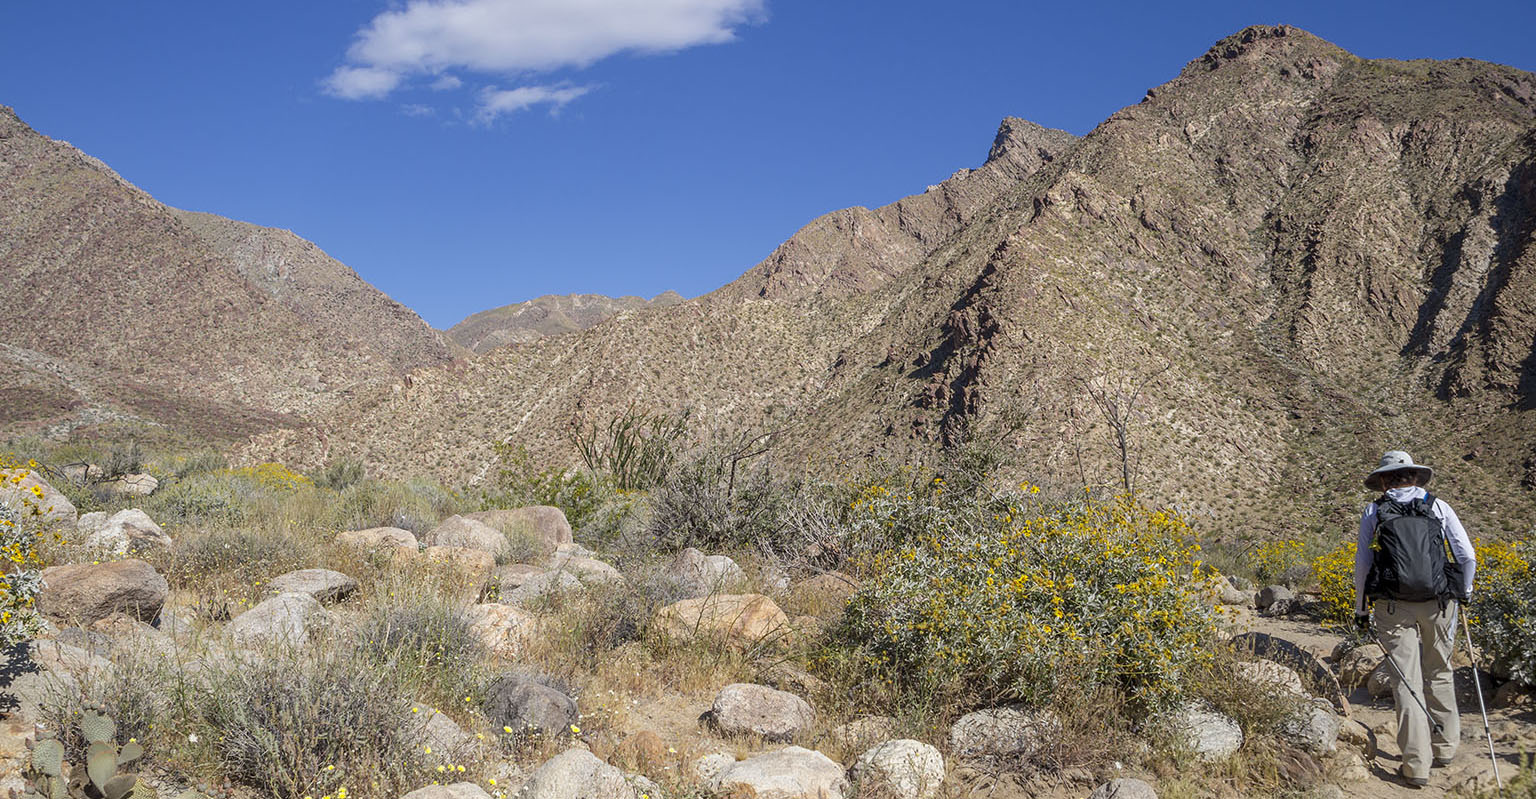 Waling up Palm Canyon.